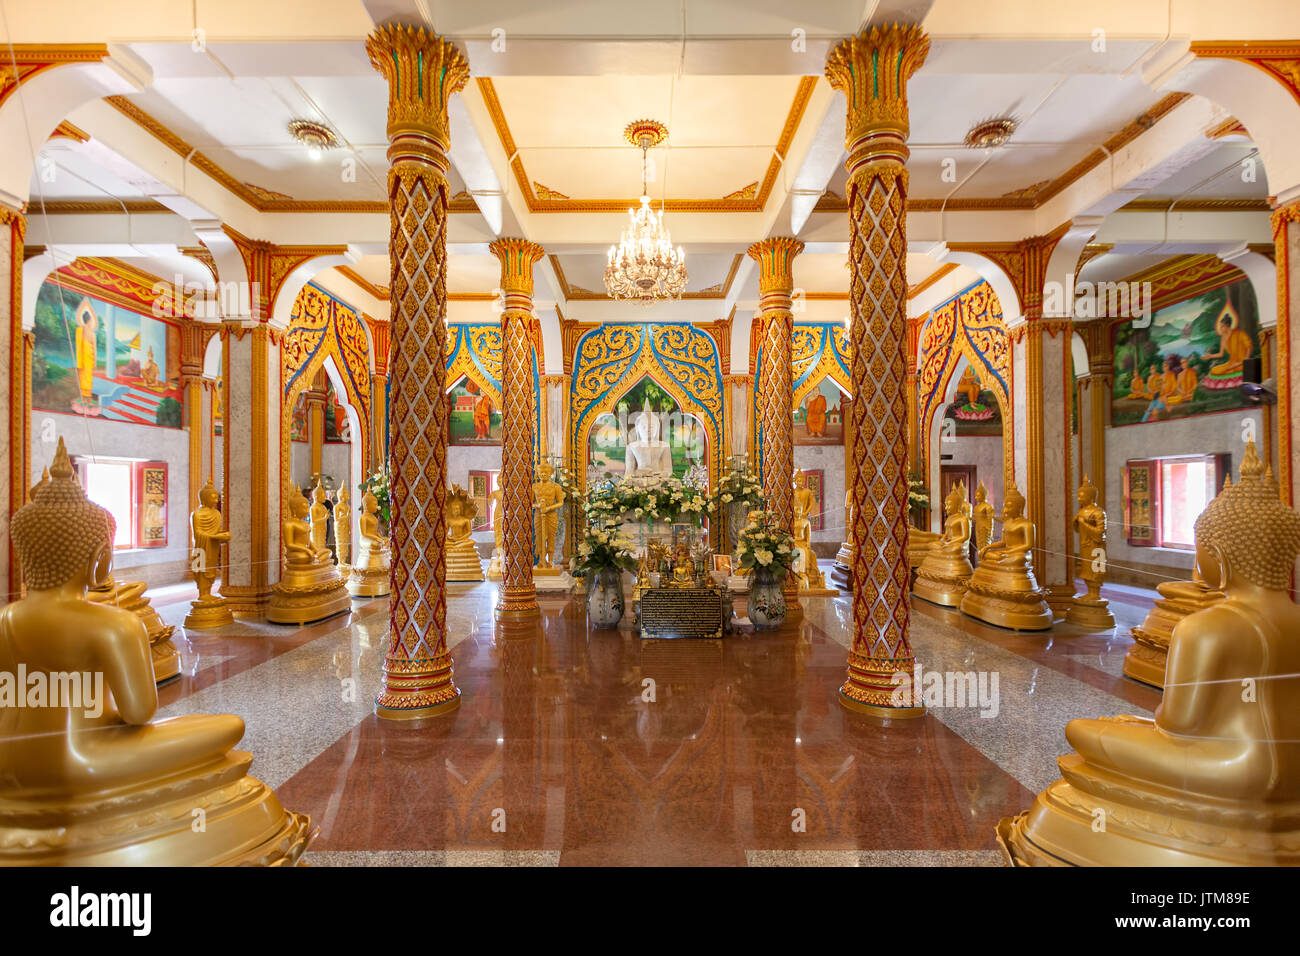 Gilded standing, seated and reclining Buddha statues inside the Viharn hall at Wat Chalong Temple in Phuket, Thailand Stock Photo